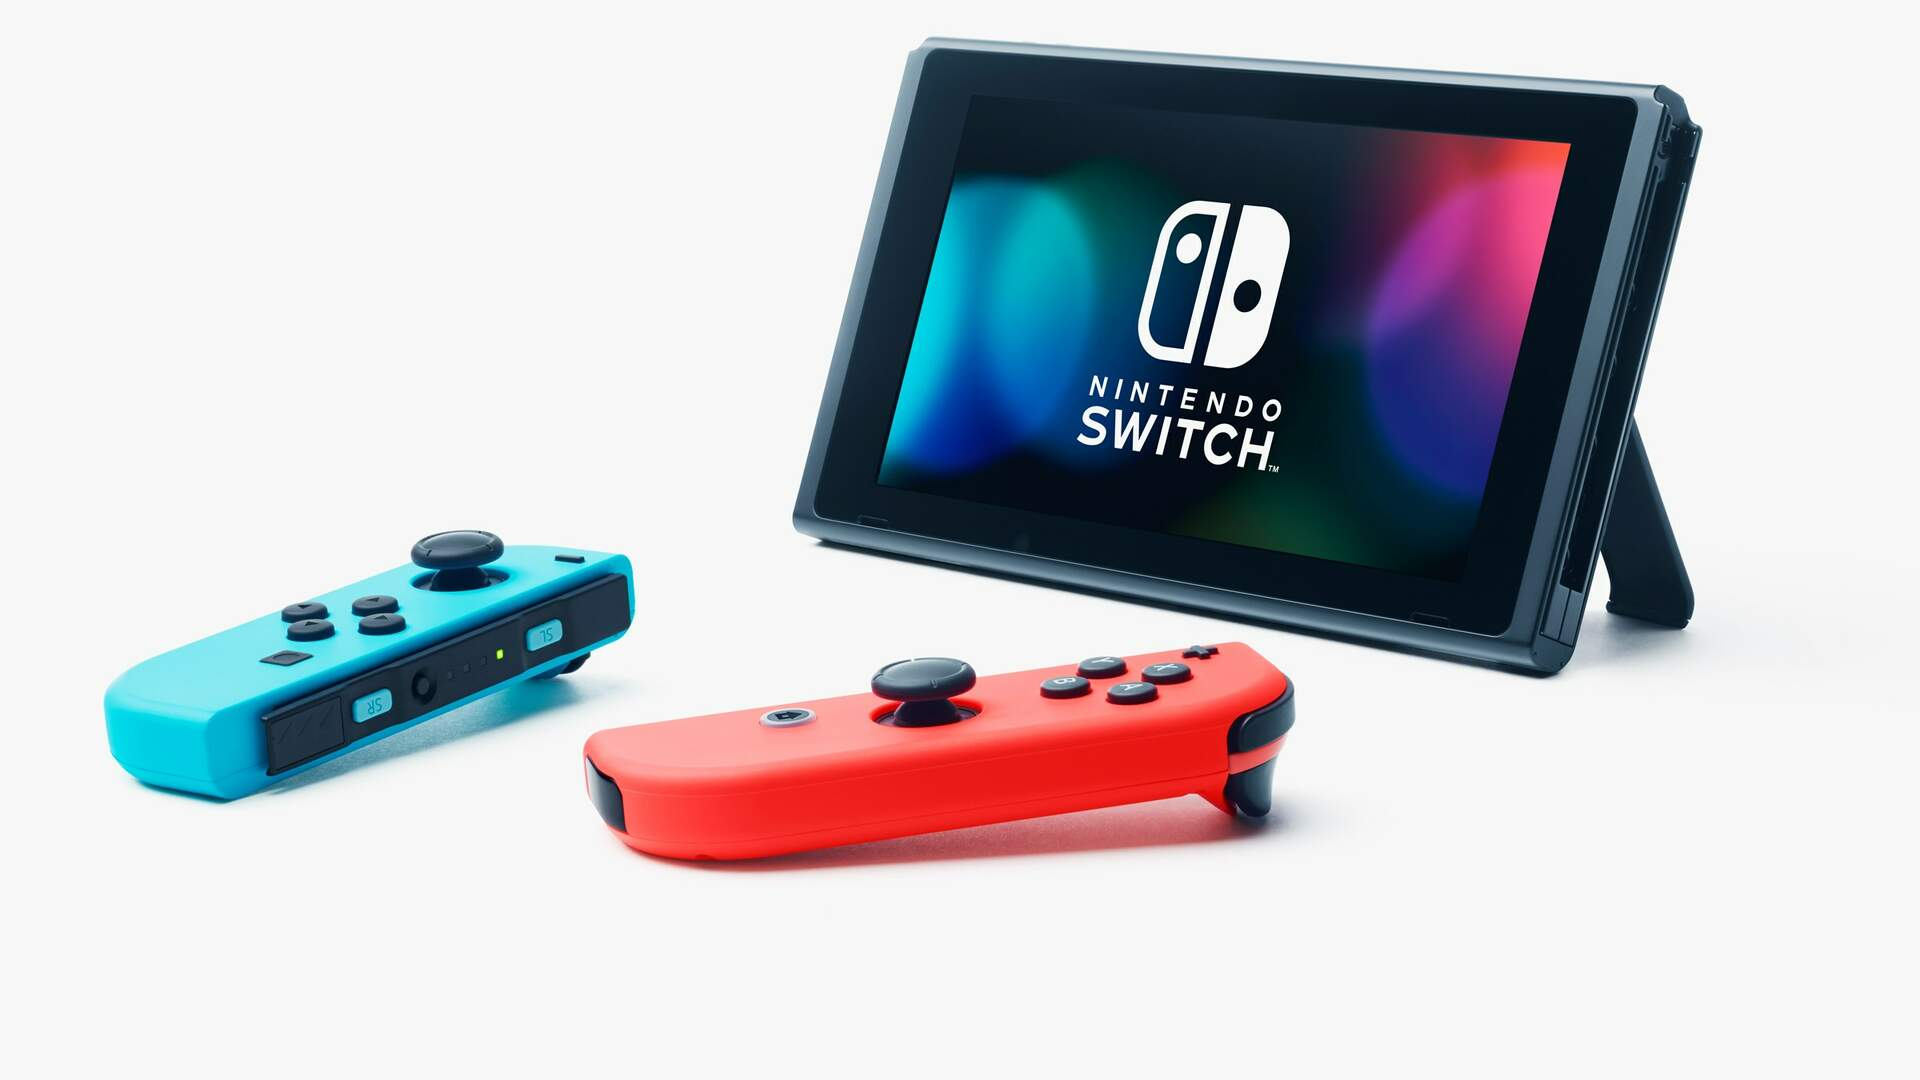 Nintendo Reveals Another New Switch, and This One's Got Longer Battery Life [Update]